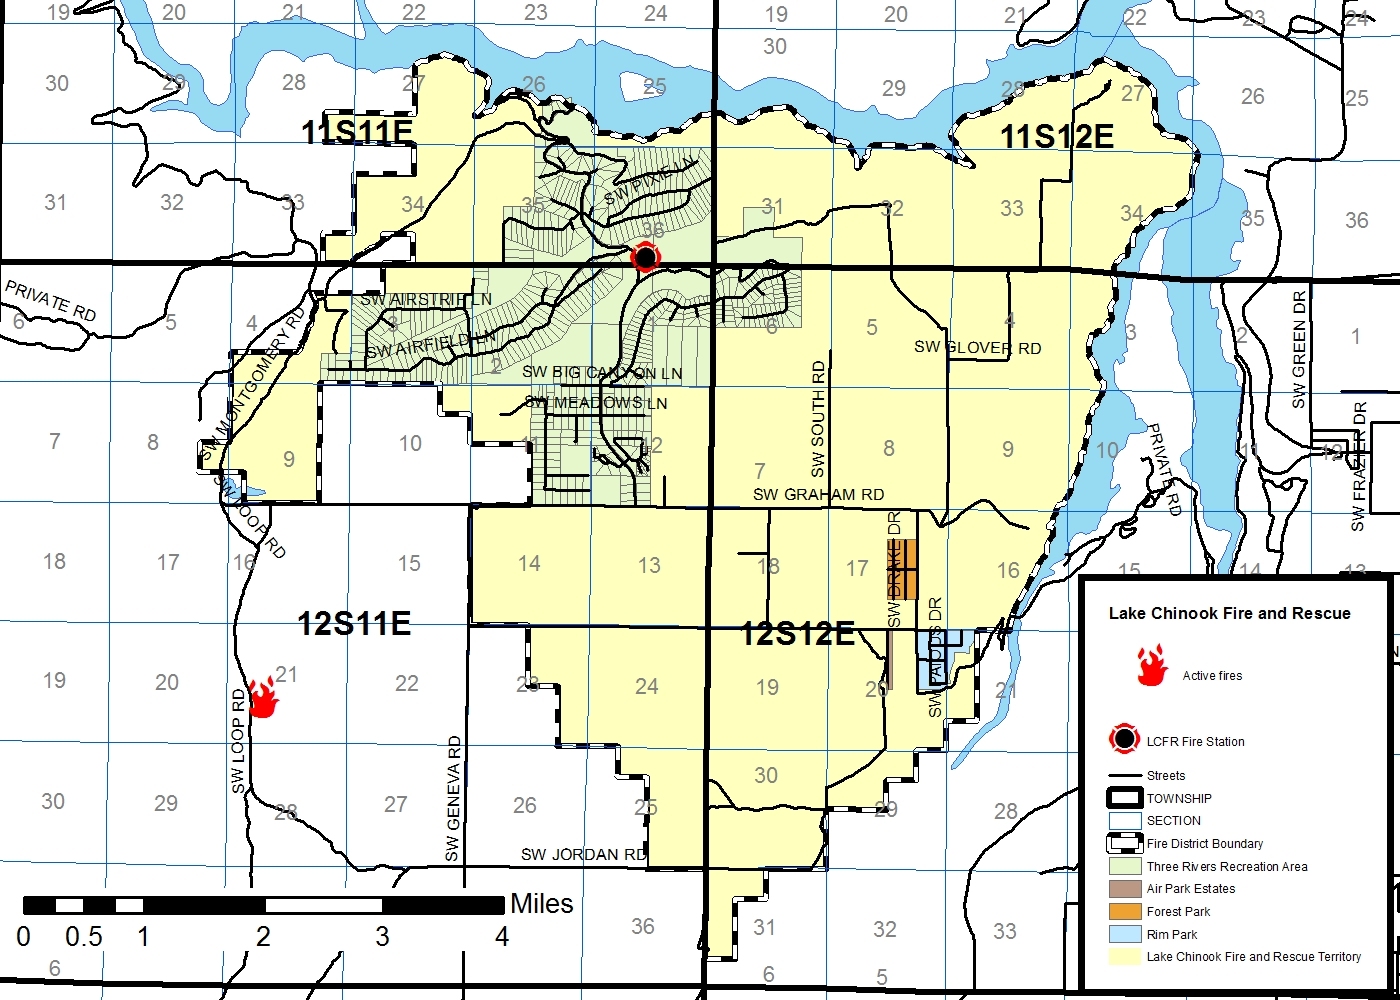 odf usfs lcfr and two helicopters are currently working on the fire that was started by lightening this afternoon here is a map of the location of the